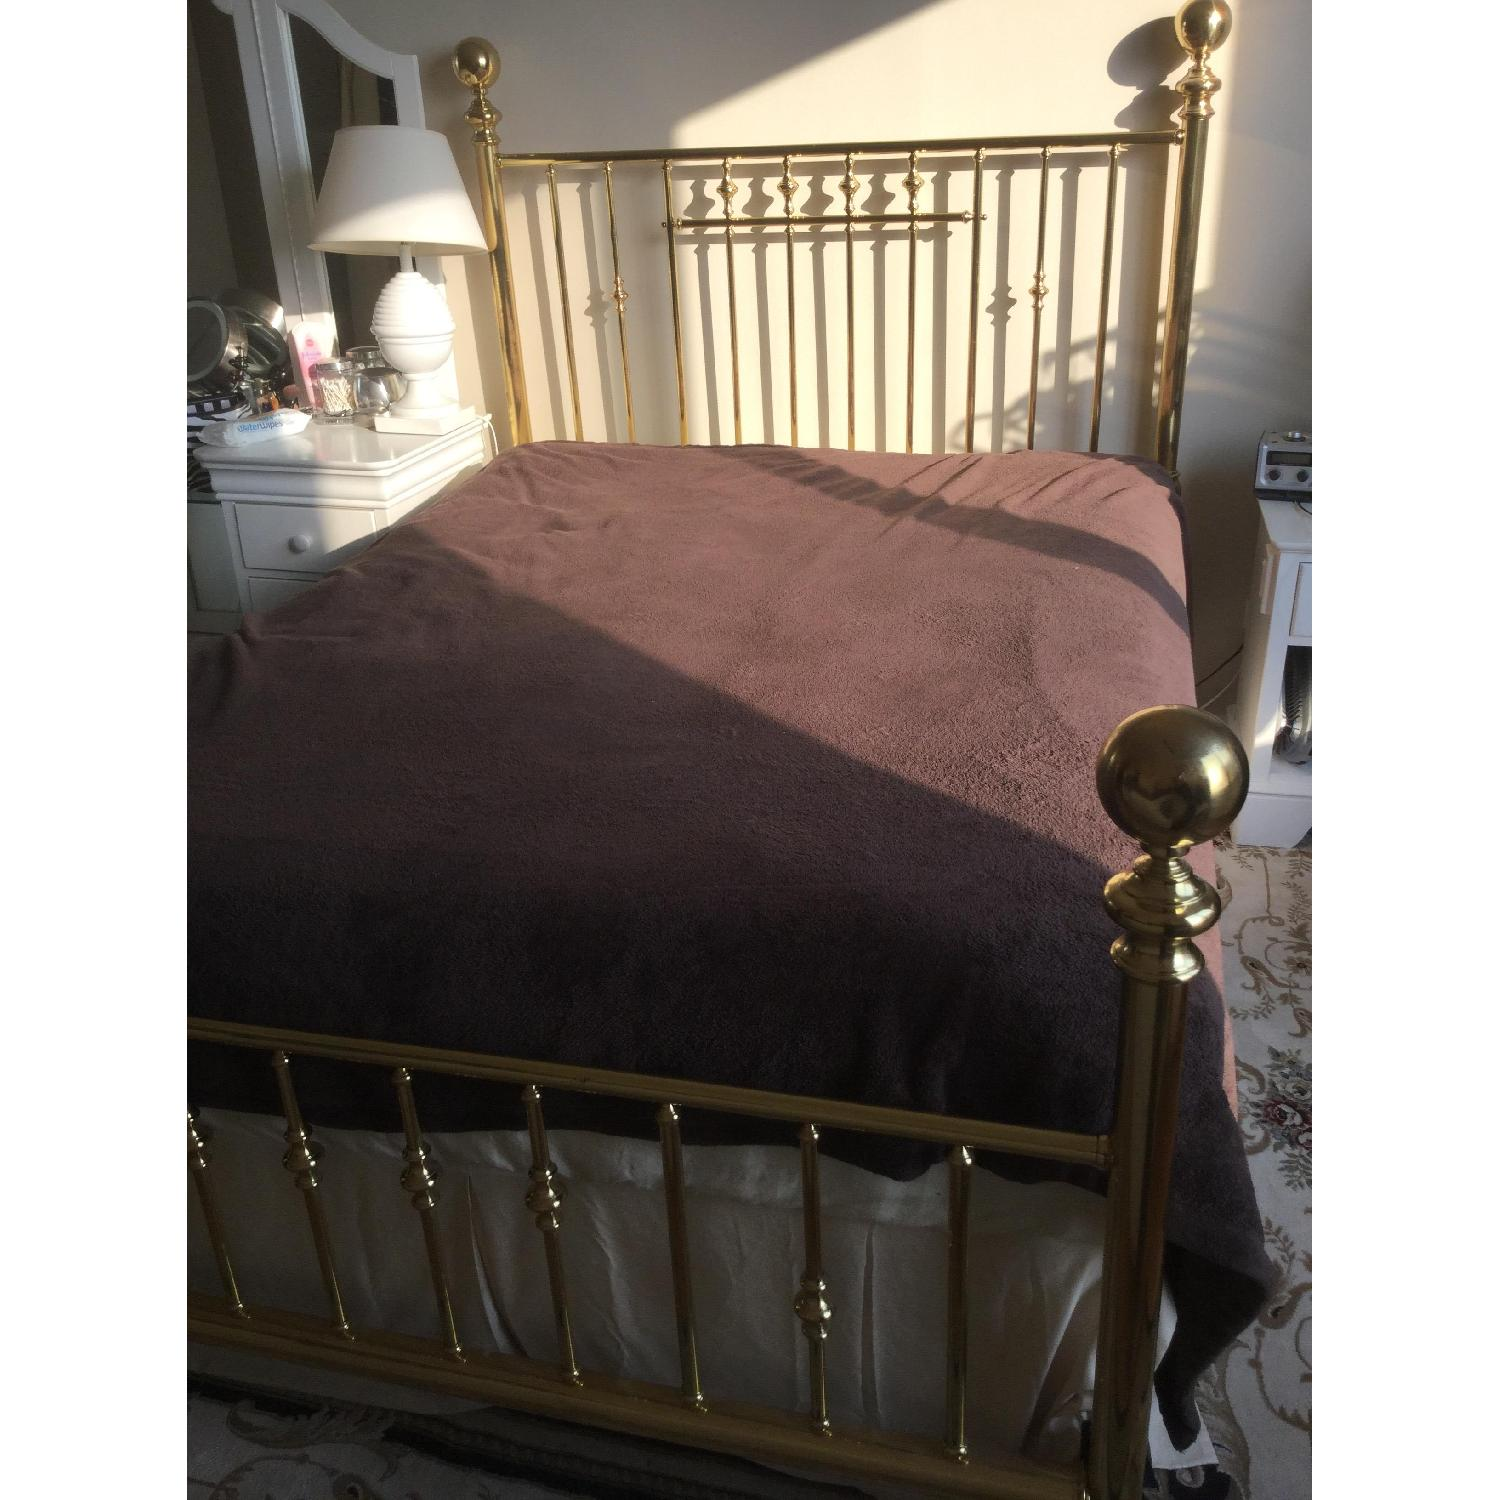 Charles P. Rogers Vintage Brass Queen Size Bed w/ Headboard & Footboard - image-4